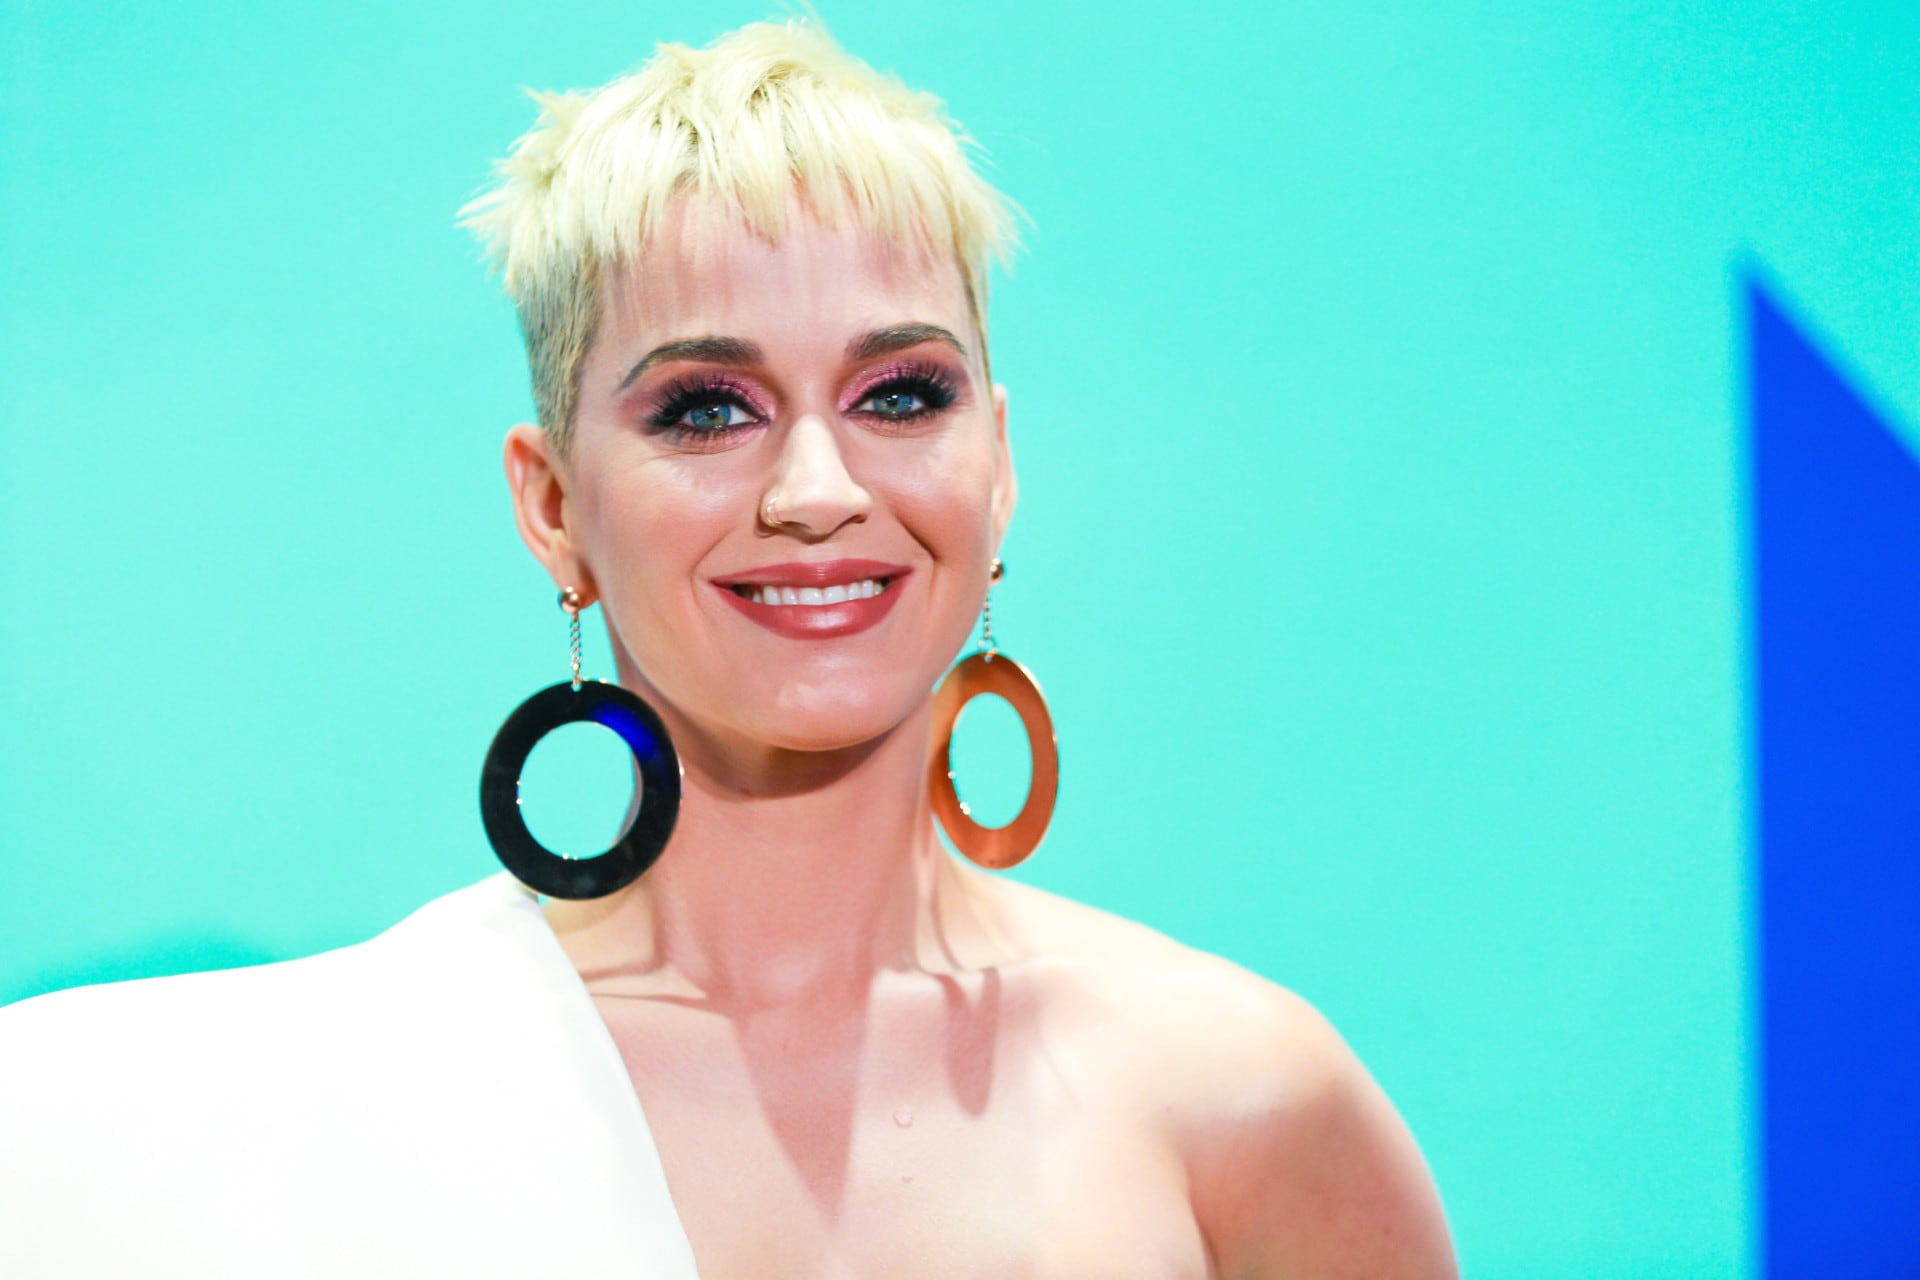 Katy Perry and The Weeknd just went on a dinner date